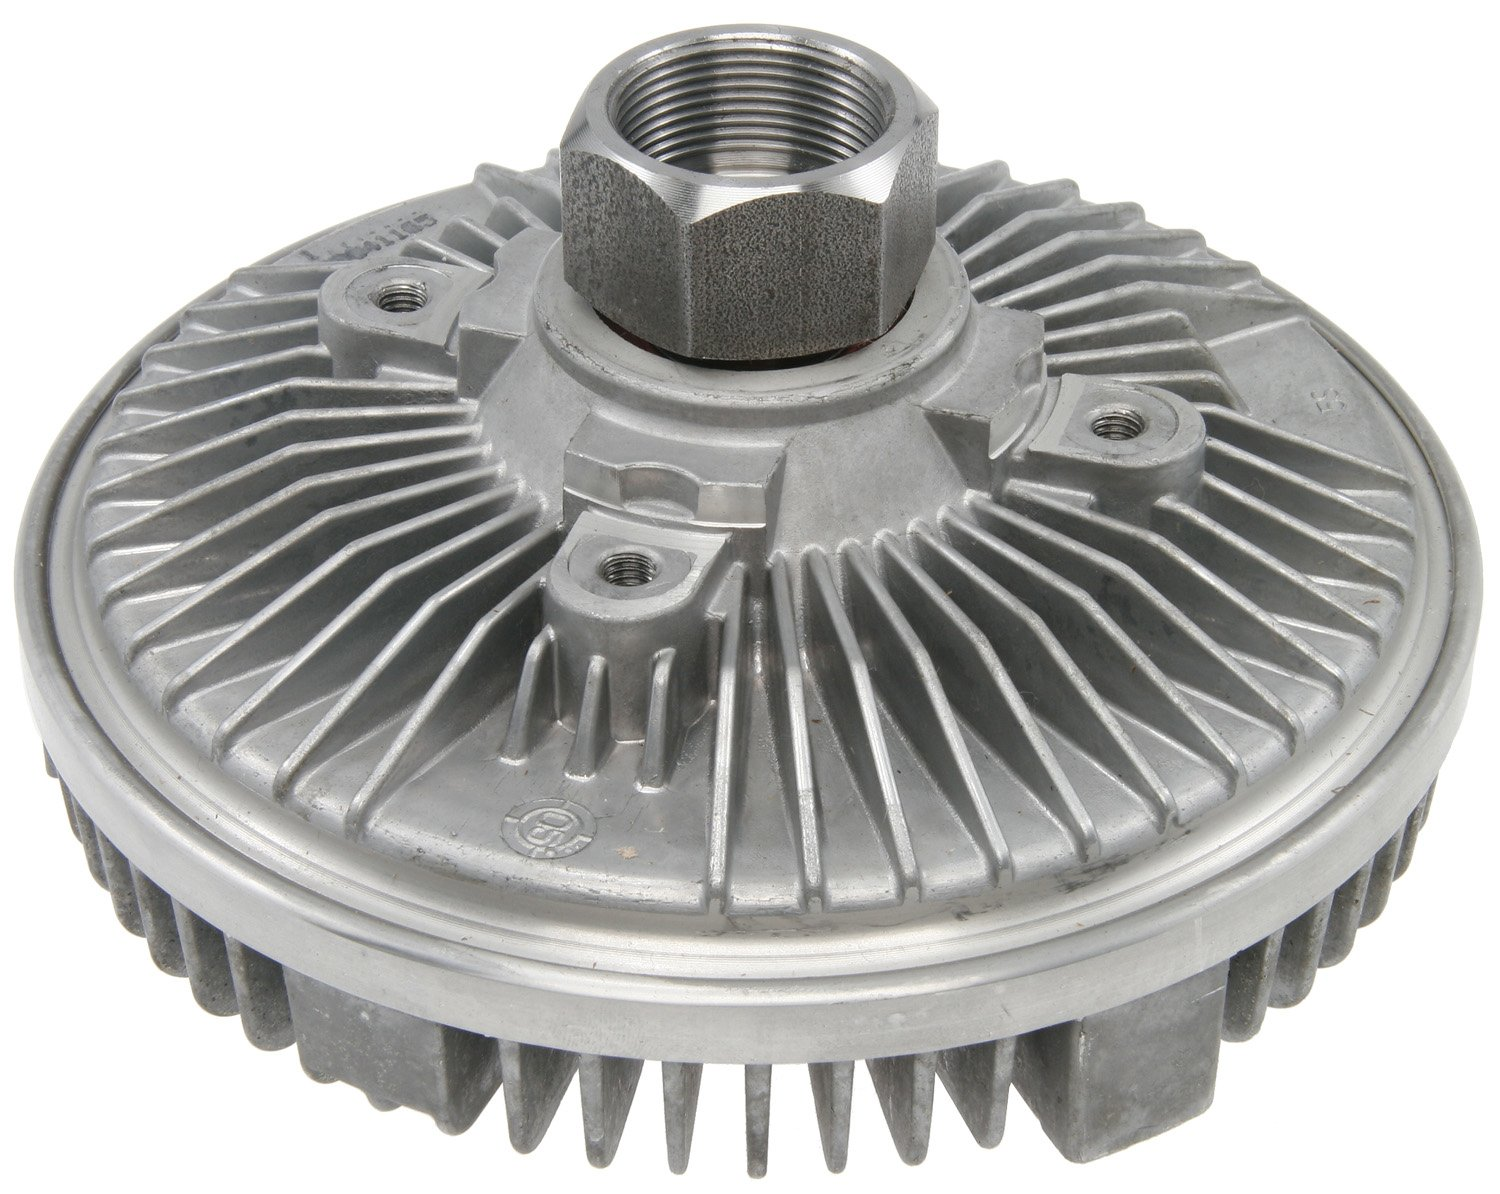 Hayden Automotive 2904 Premium Fan Clutch